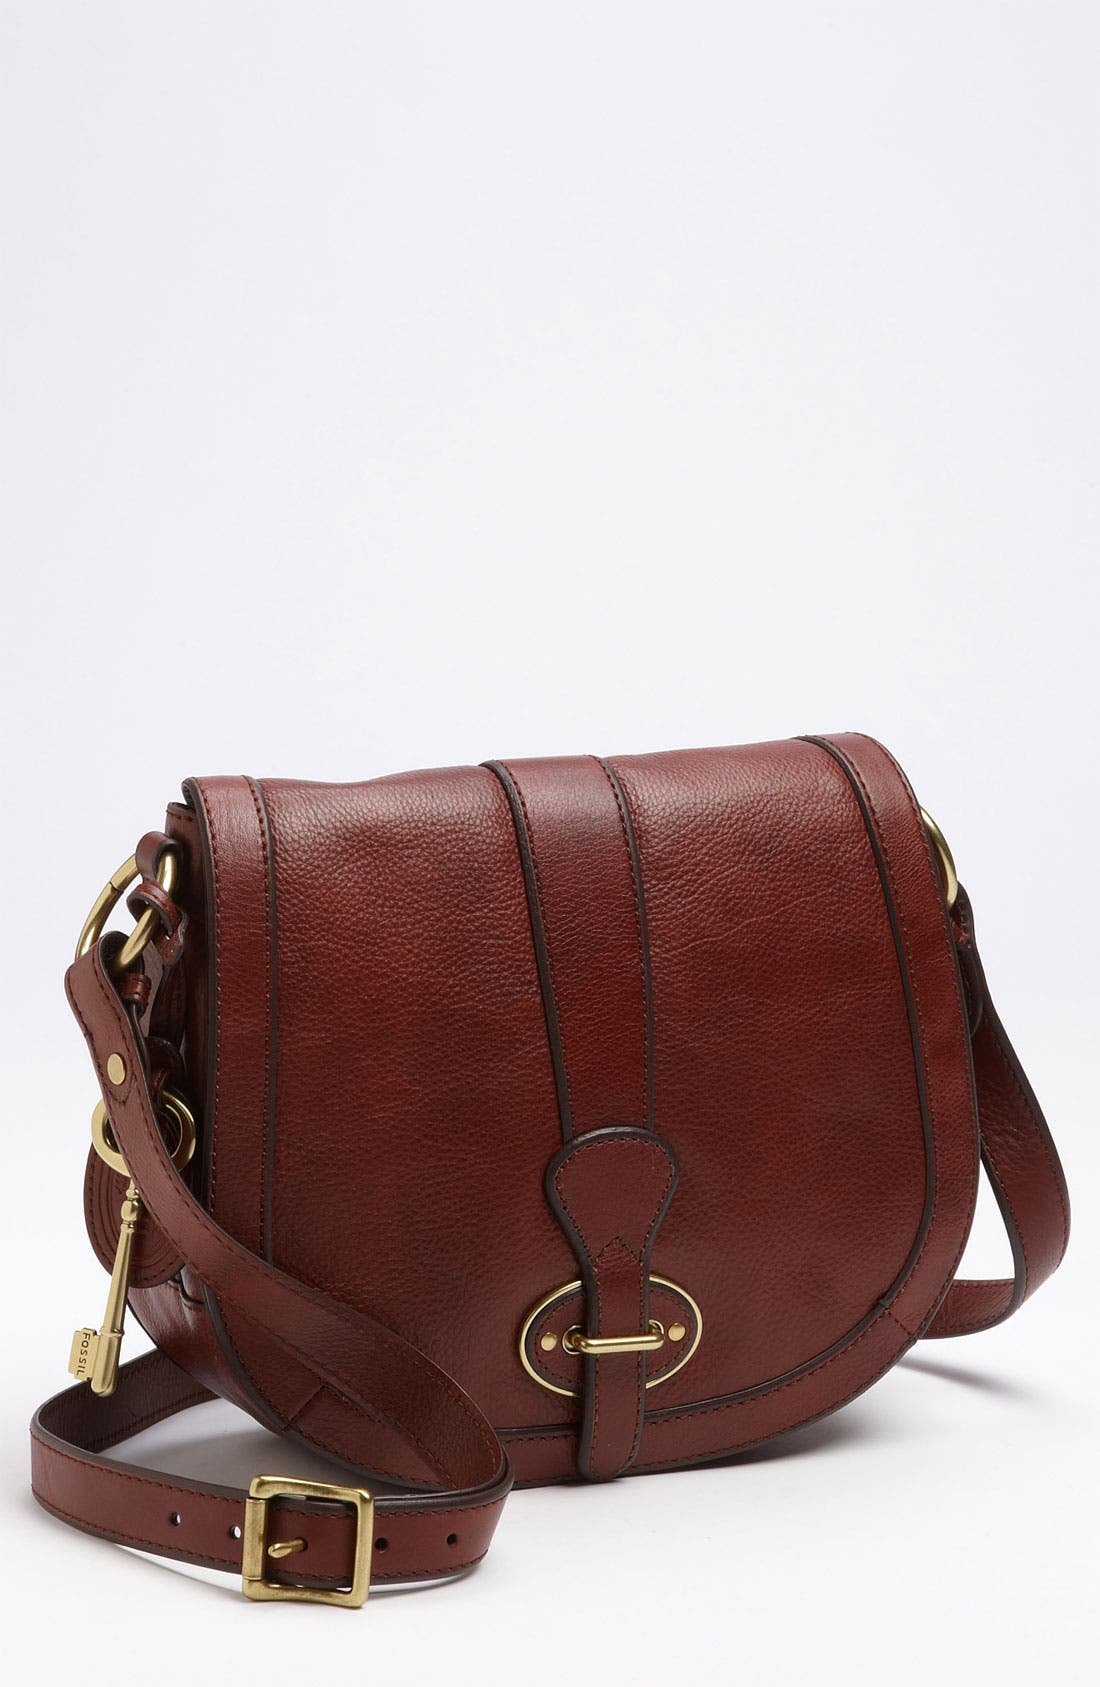 Alternate Image 1 Selected - Fossil 'Vintage Re-Issue' Crossbody Bag